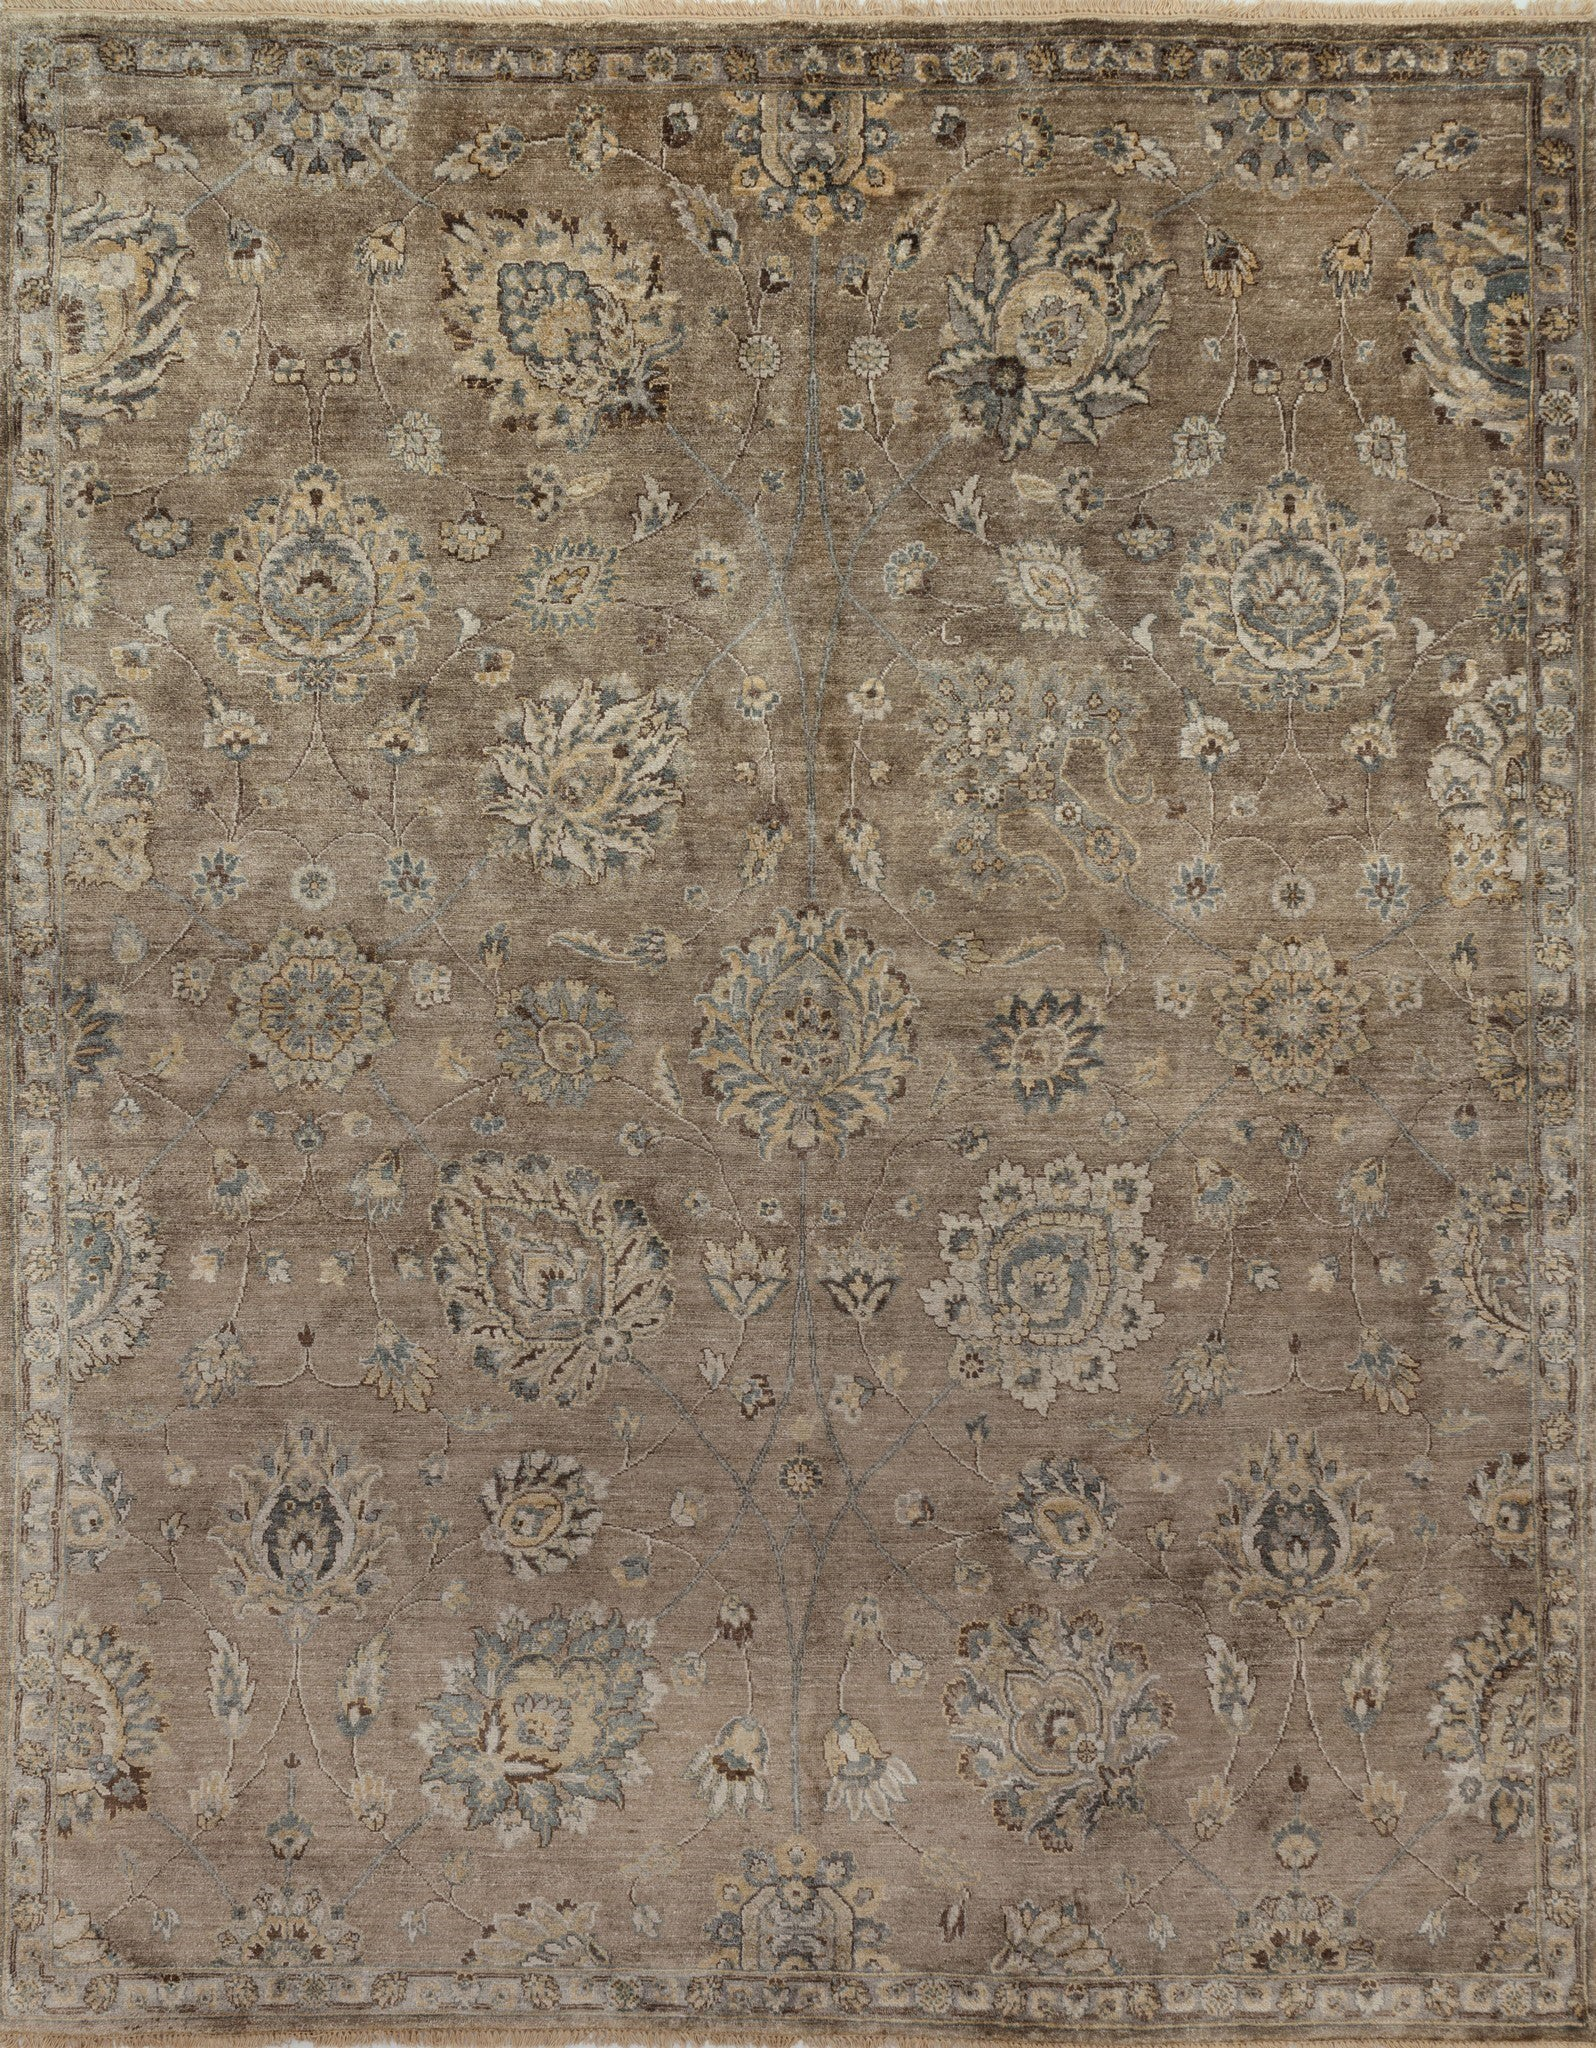 Loloi Kensington KG-06 Feather/Gray Area Rug by Henrietta Spencer-Churchill main image